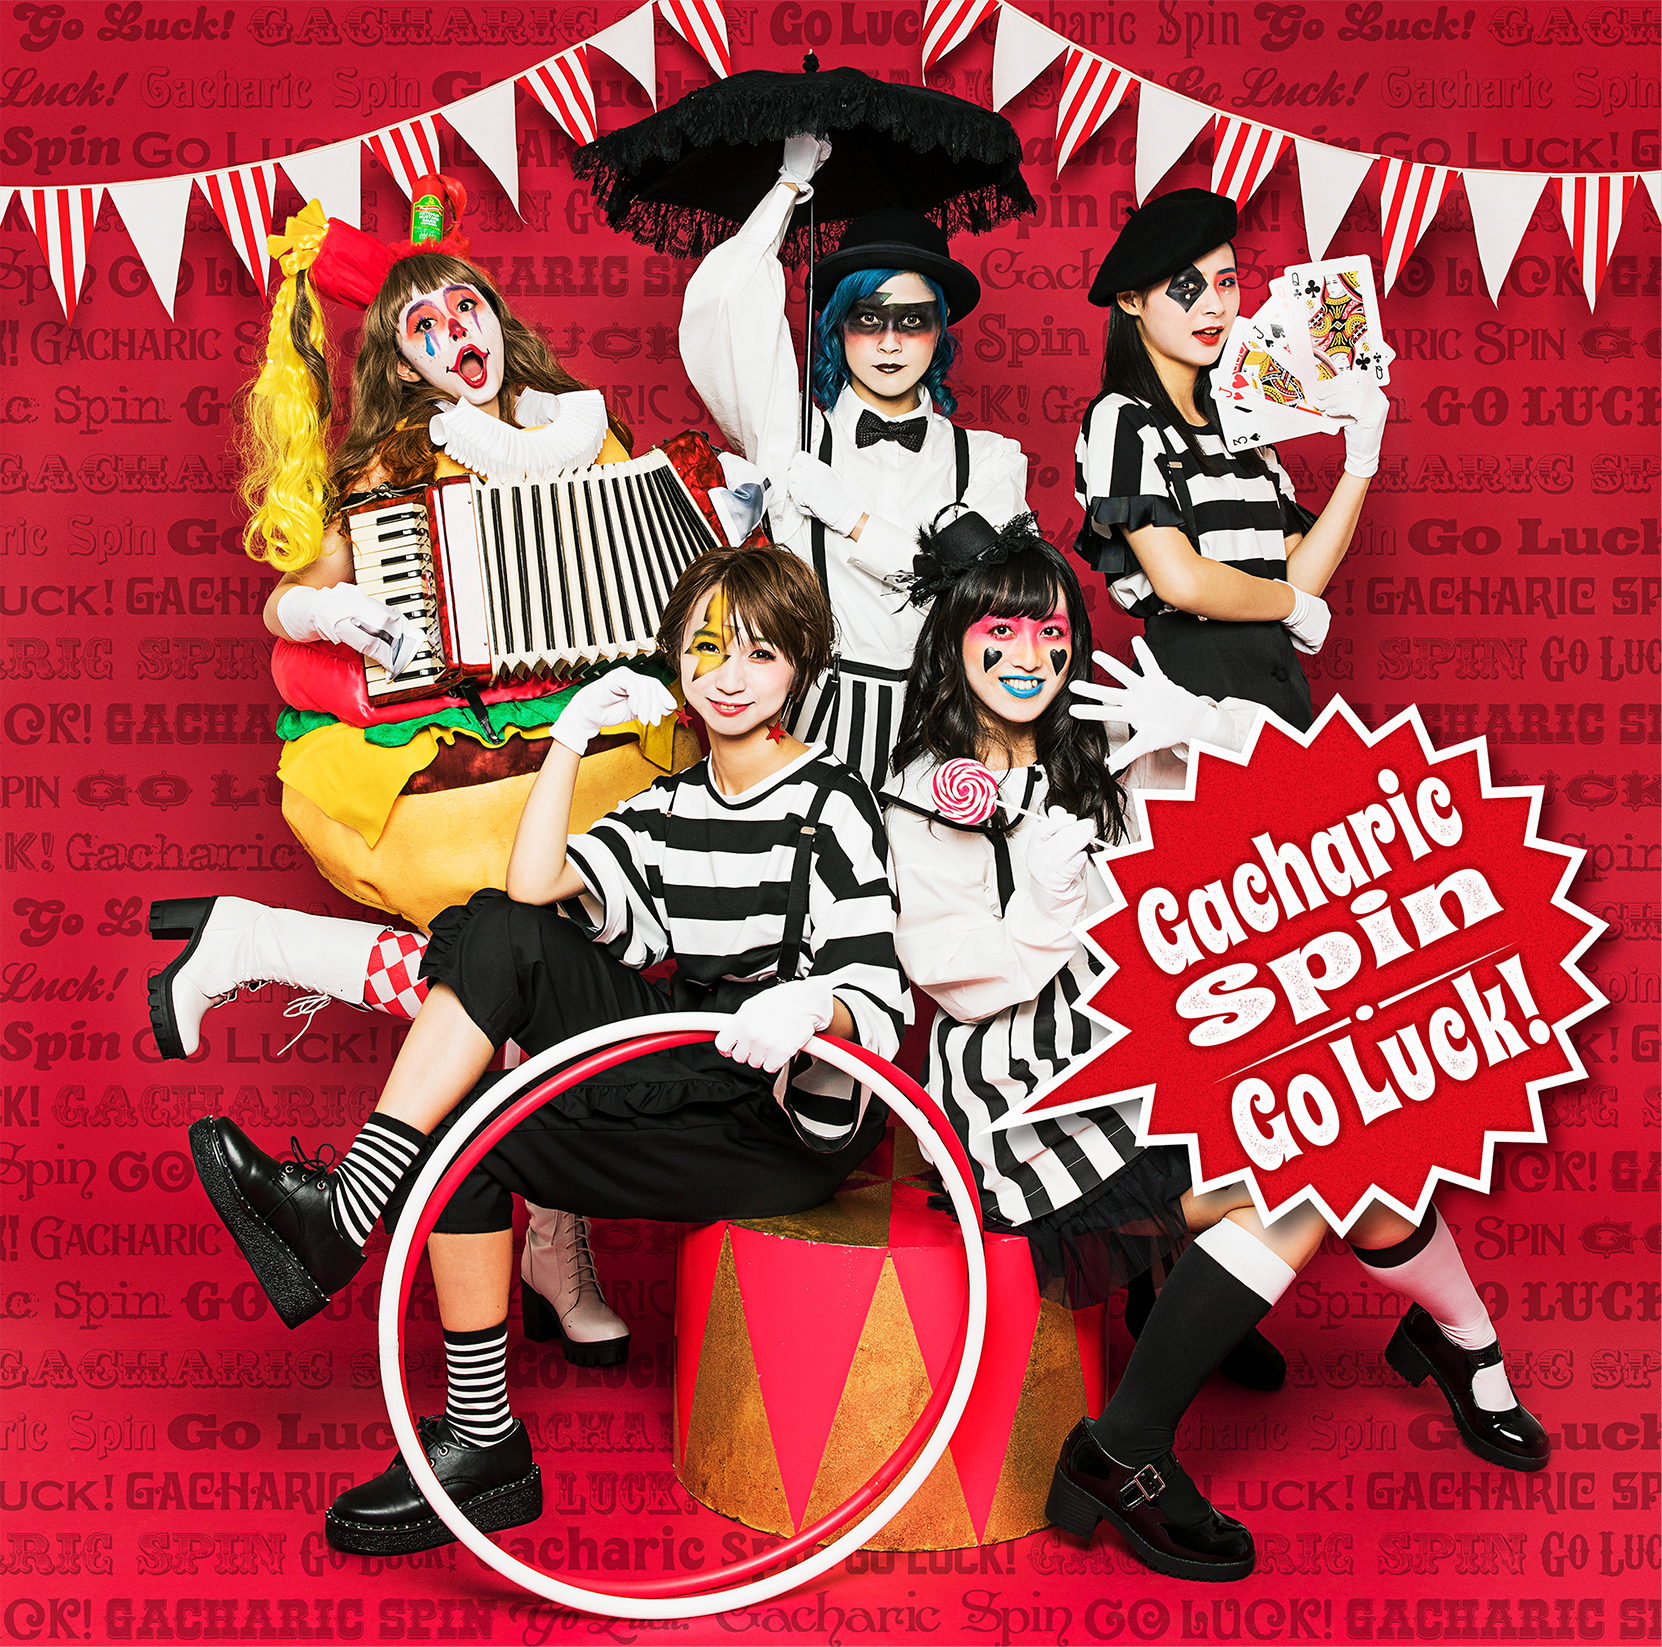 Gacharic Spin Cover Mini Album『Go Luck!』Type-GACHA